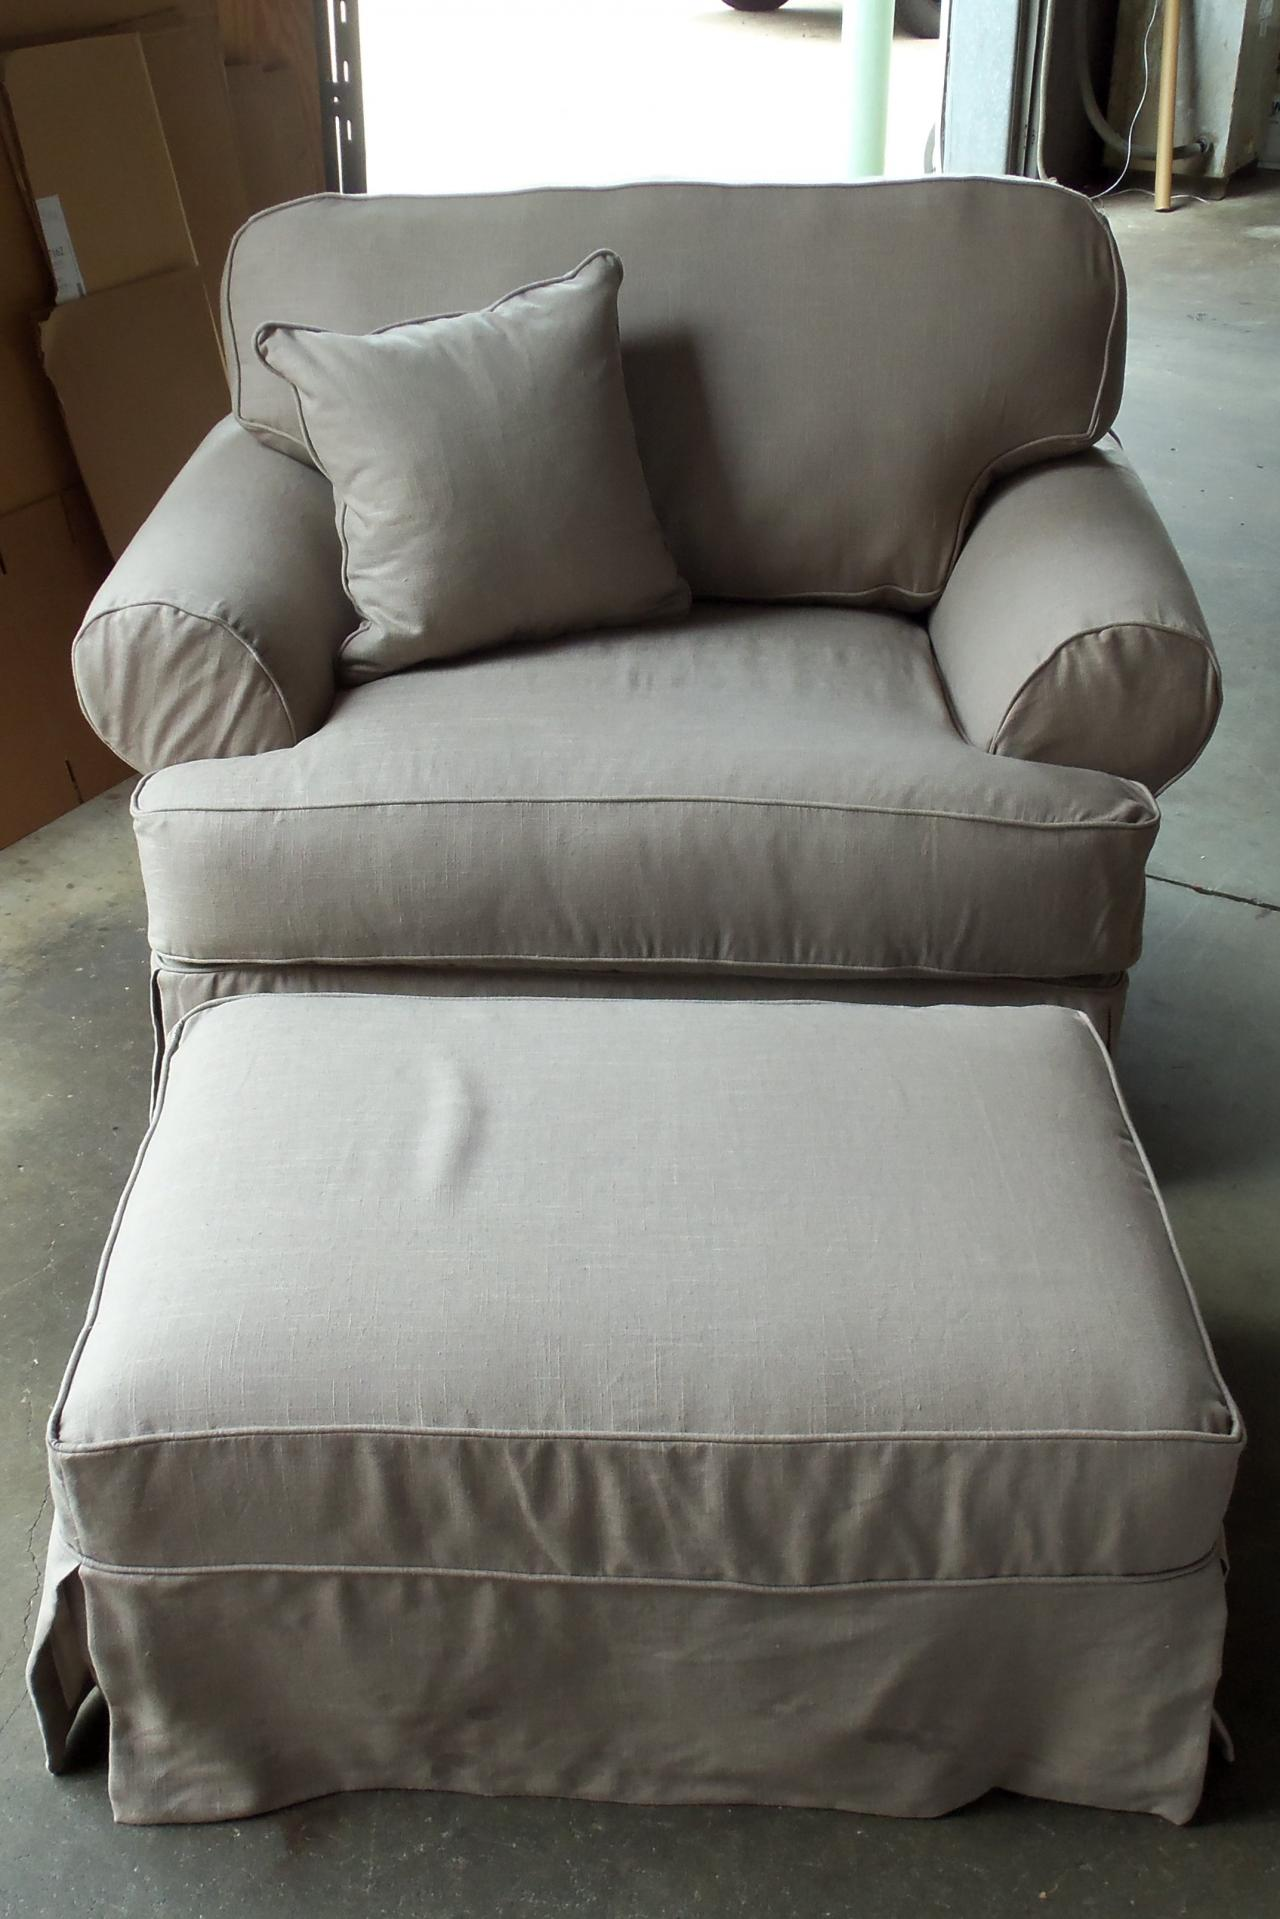 Rowe Replacement Slipcovers Elegant Leachco The Natural